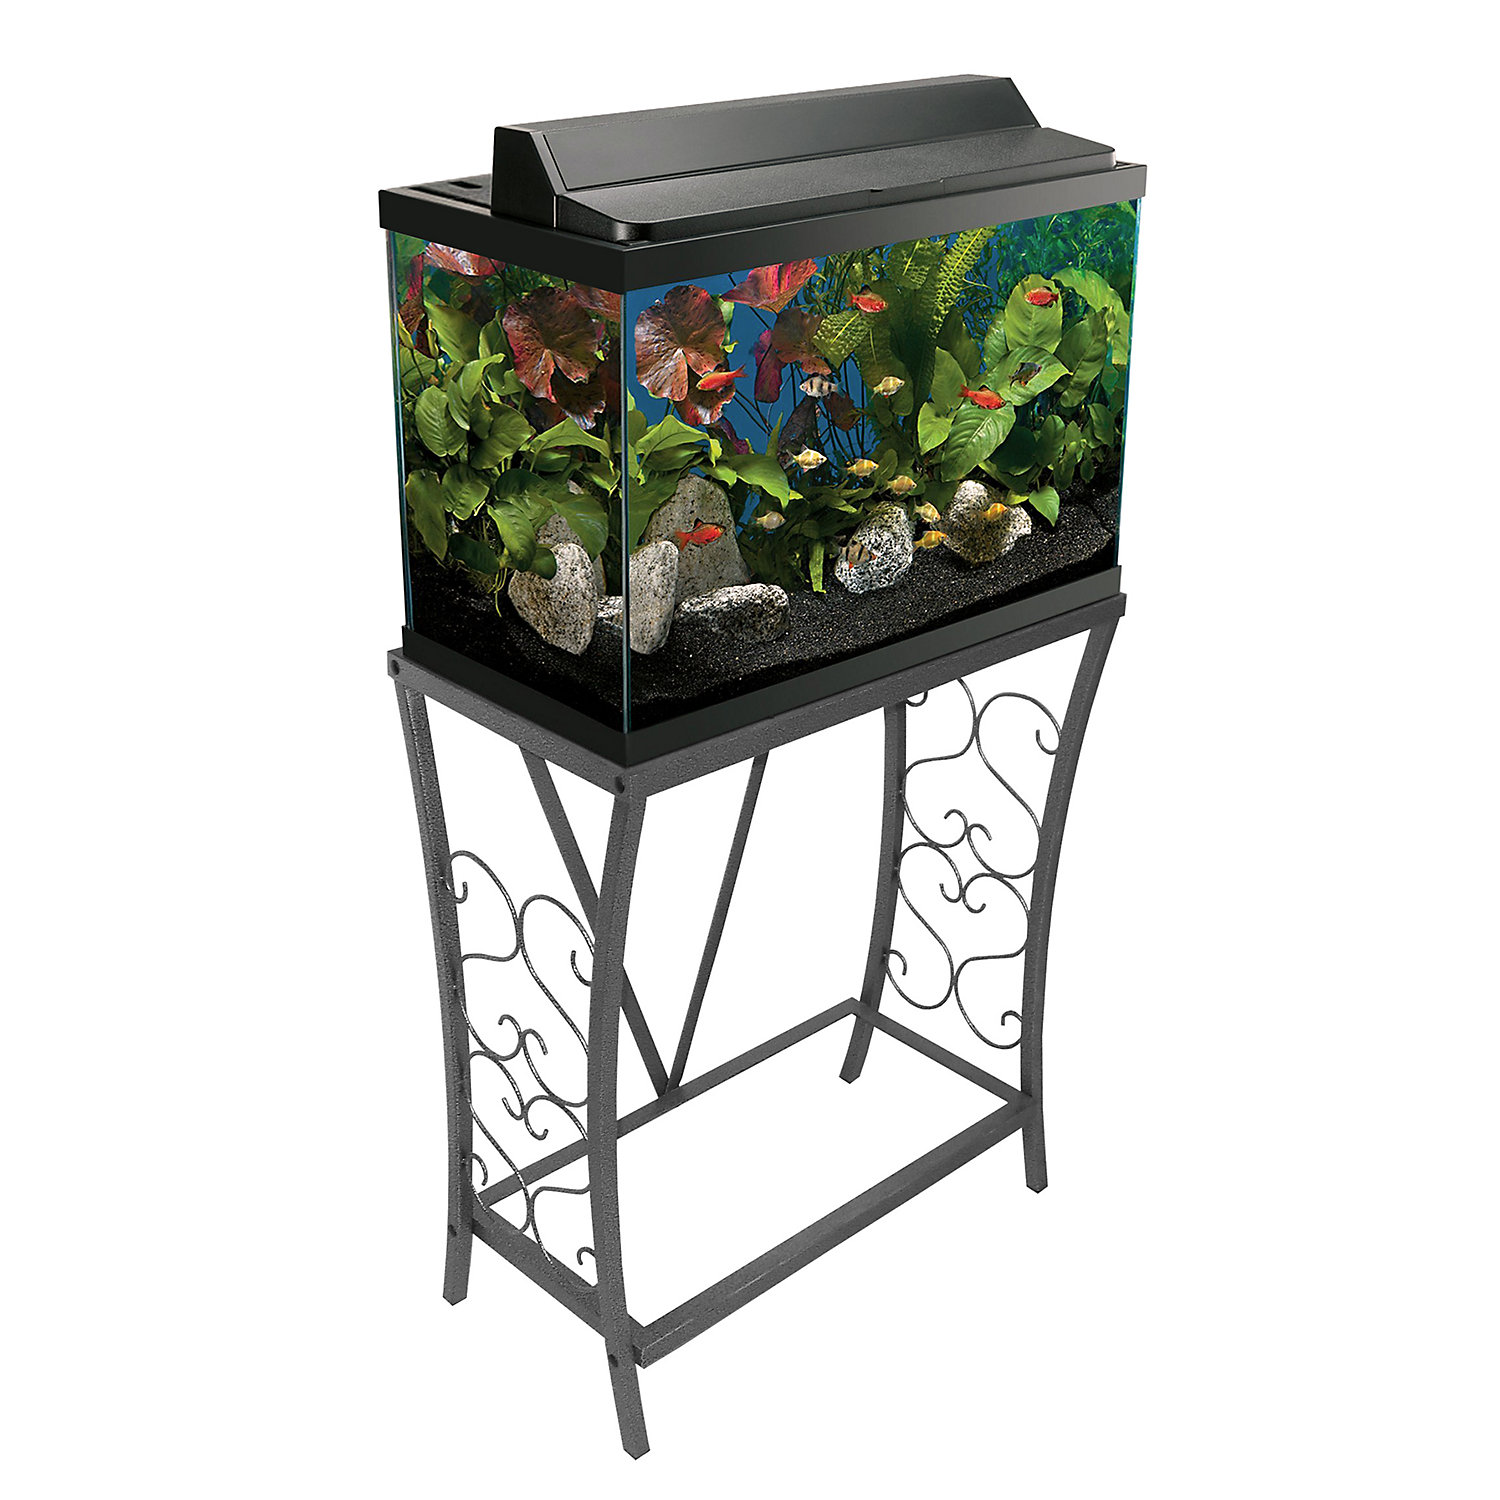 Fish for aquarium online - Aquatic Fundamentals Silver Vein Scroll Aquarium Stand 20 Gal